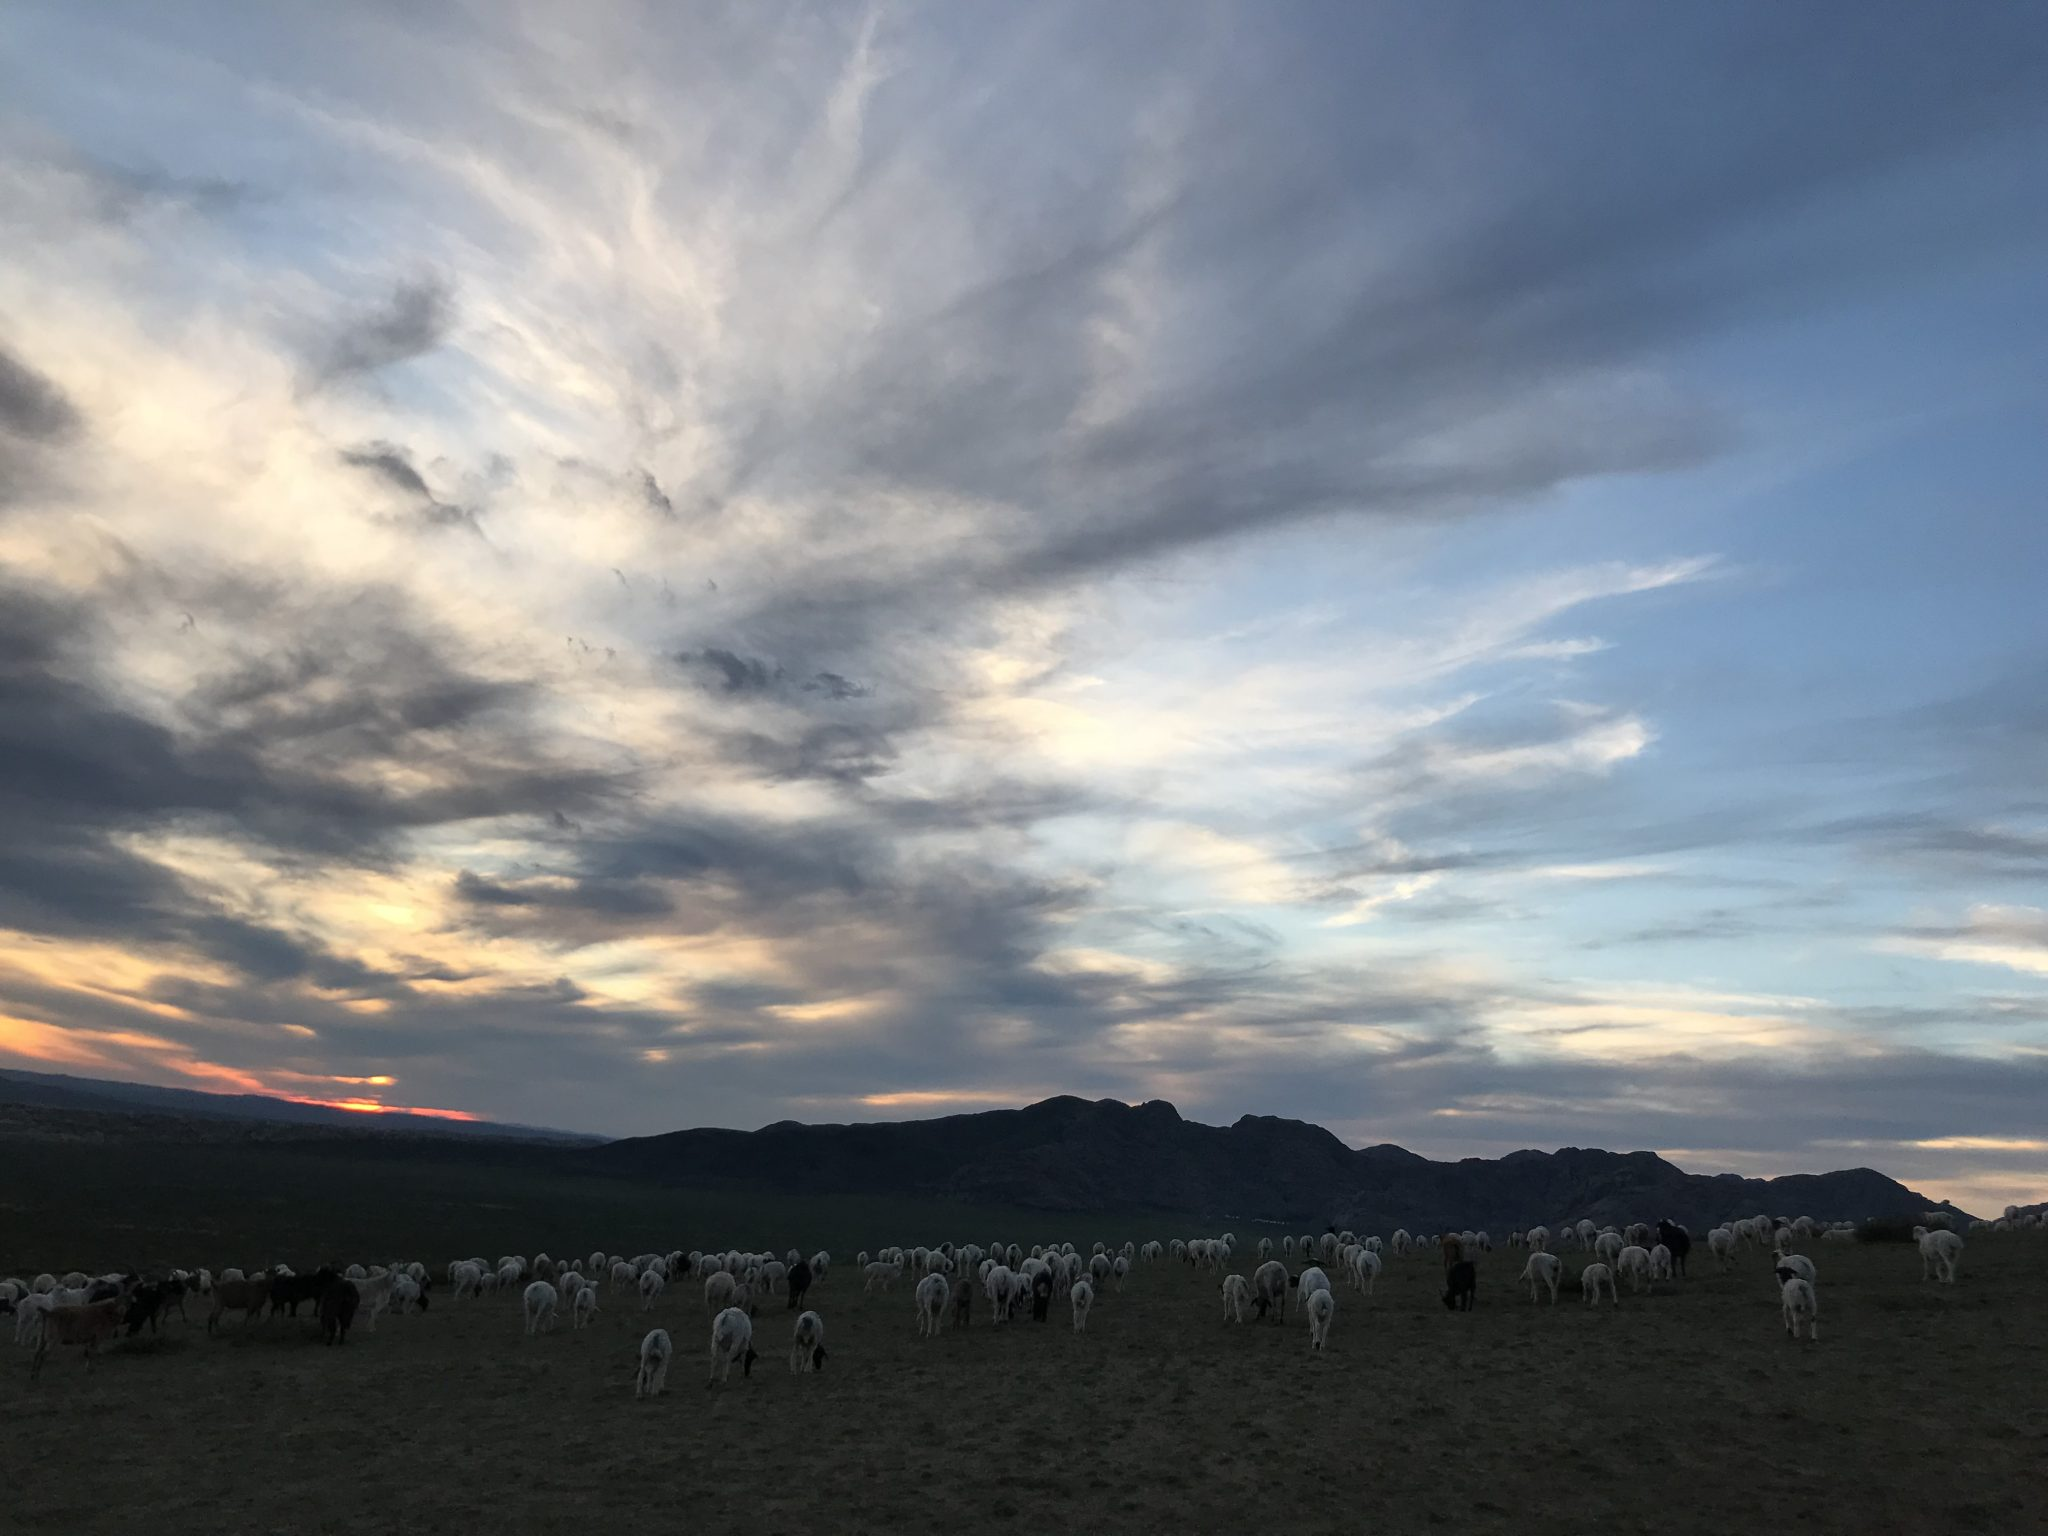 Sheep and goat herds roaming during sunset mongolian ecotourism